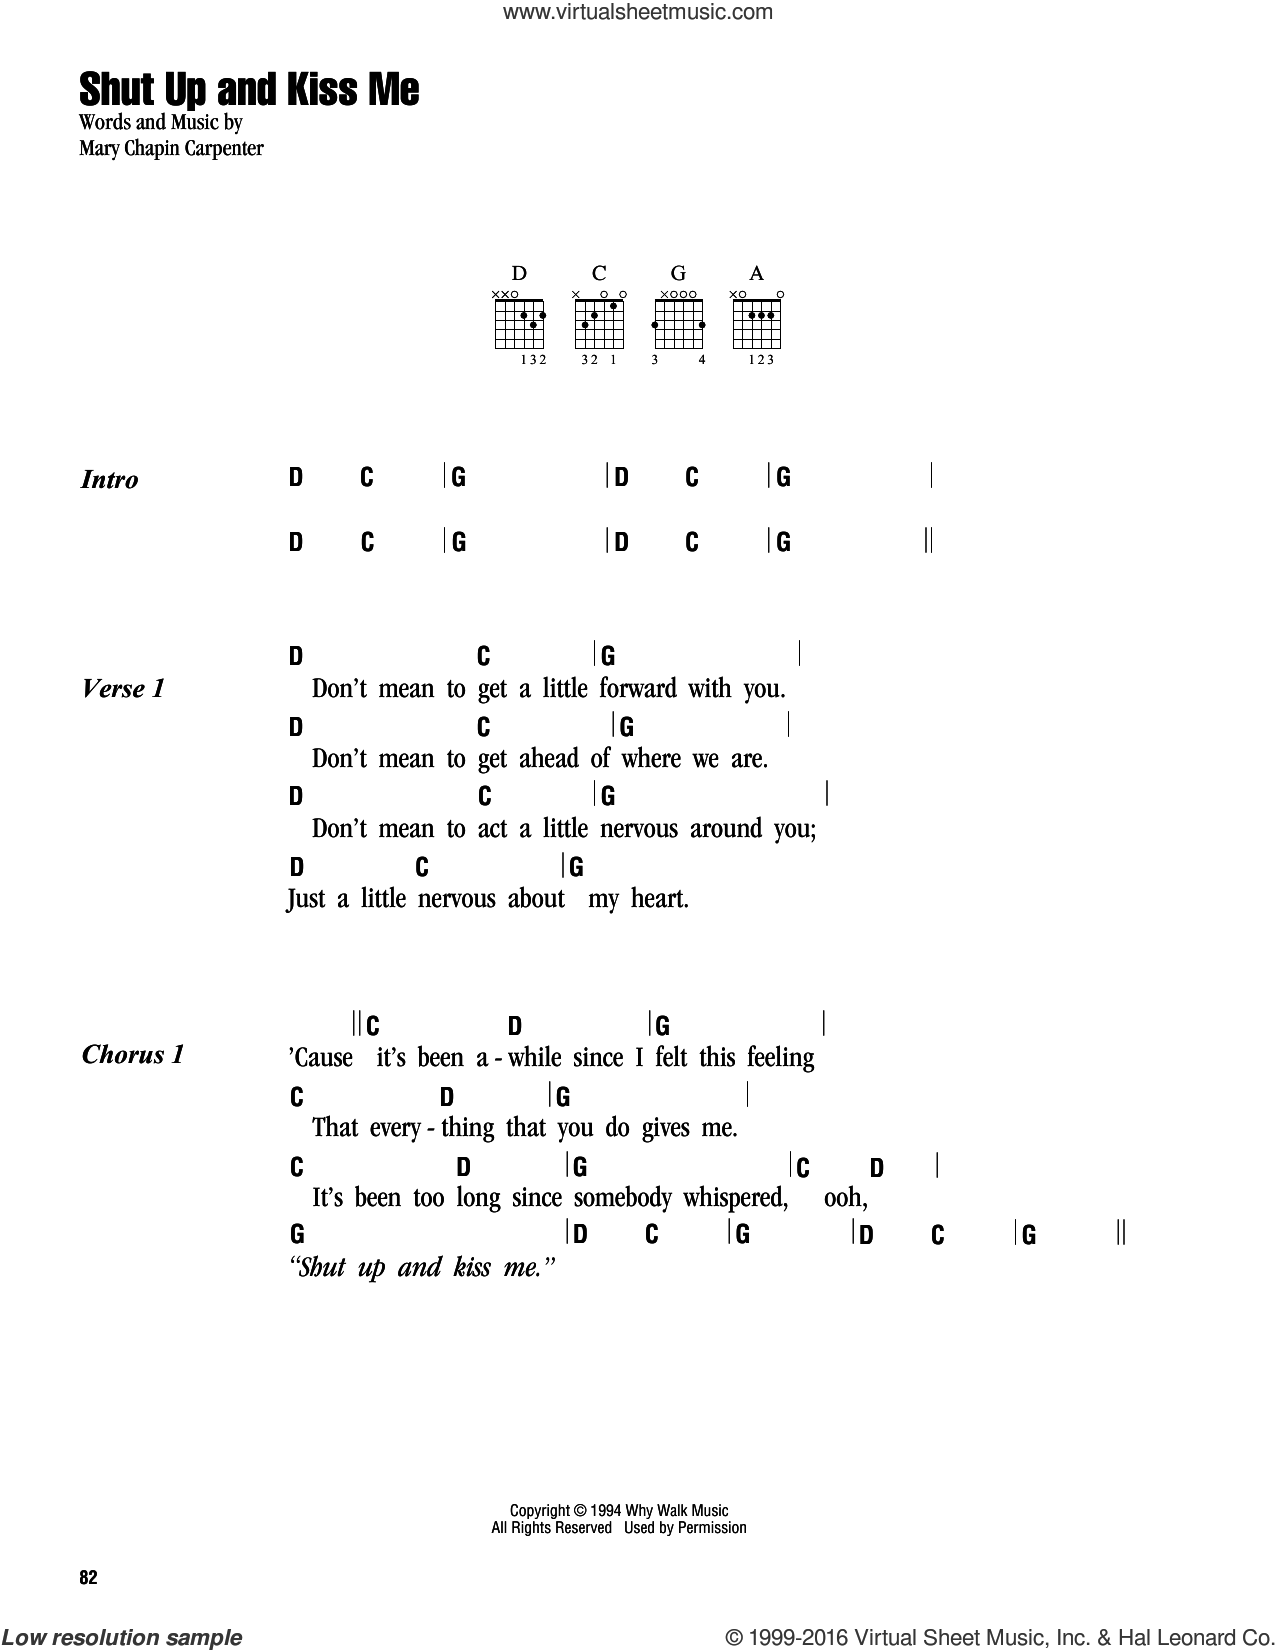 Shut Up And Kiss Me sheet music for guitar (chords) by Mary Chapin Carpenter. Score Image Preview.